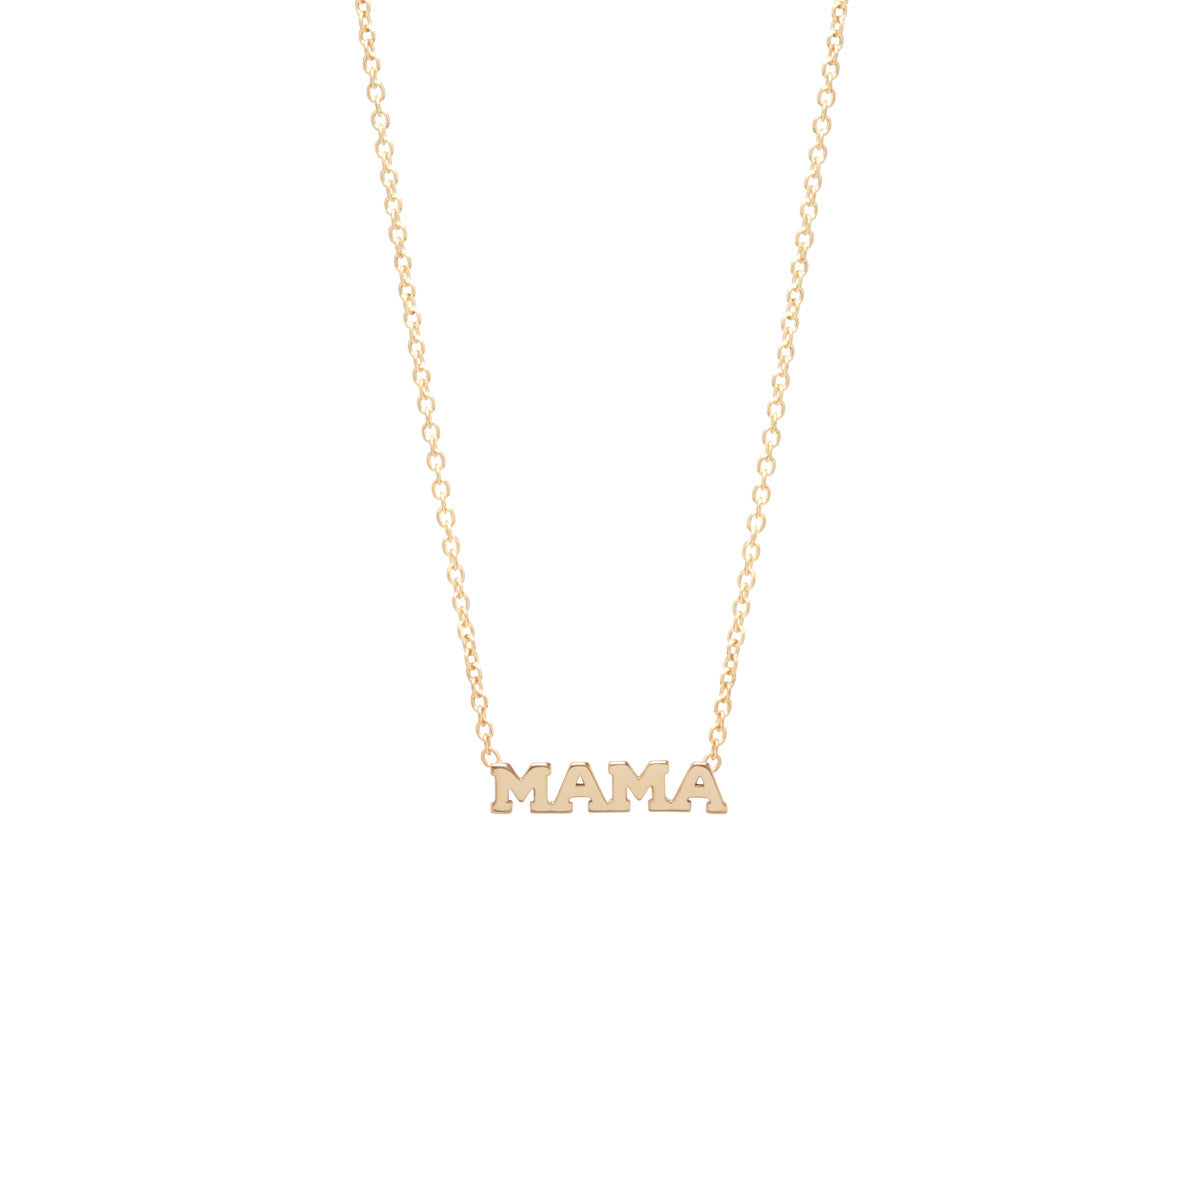 crown mothers gift mother mom gold necklace olizz day mama